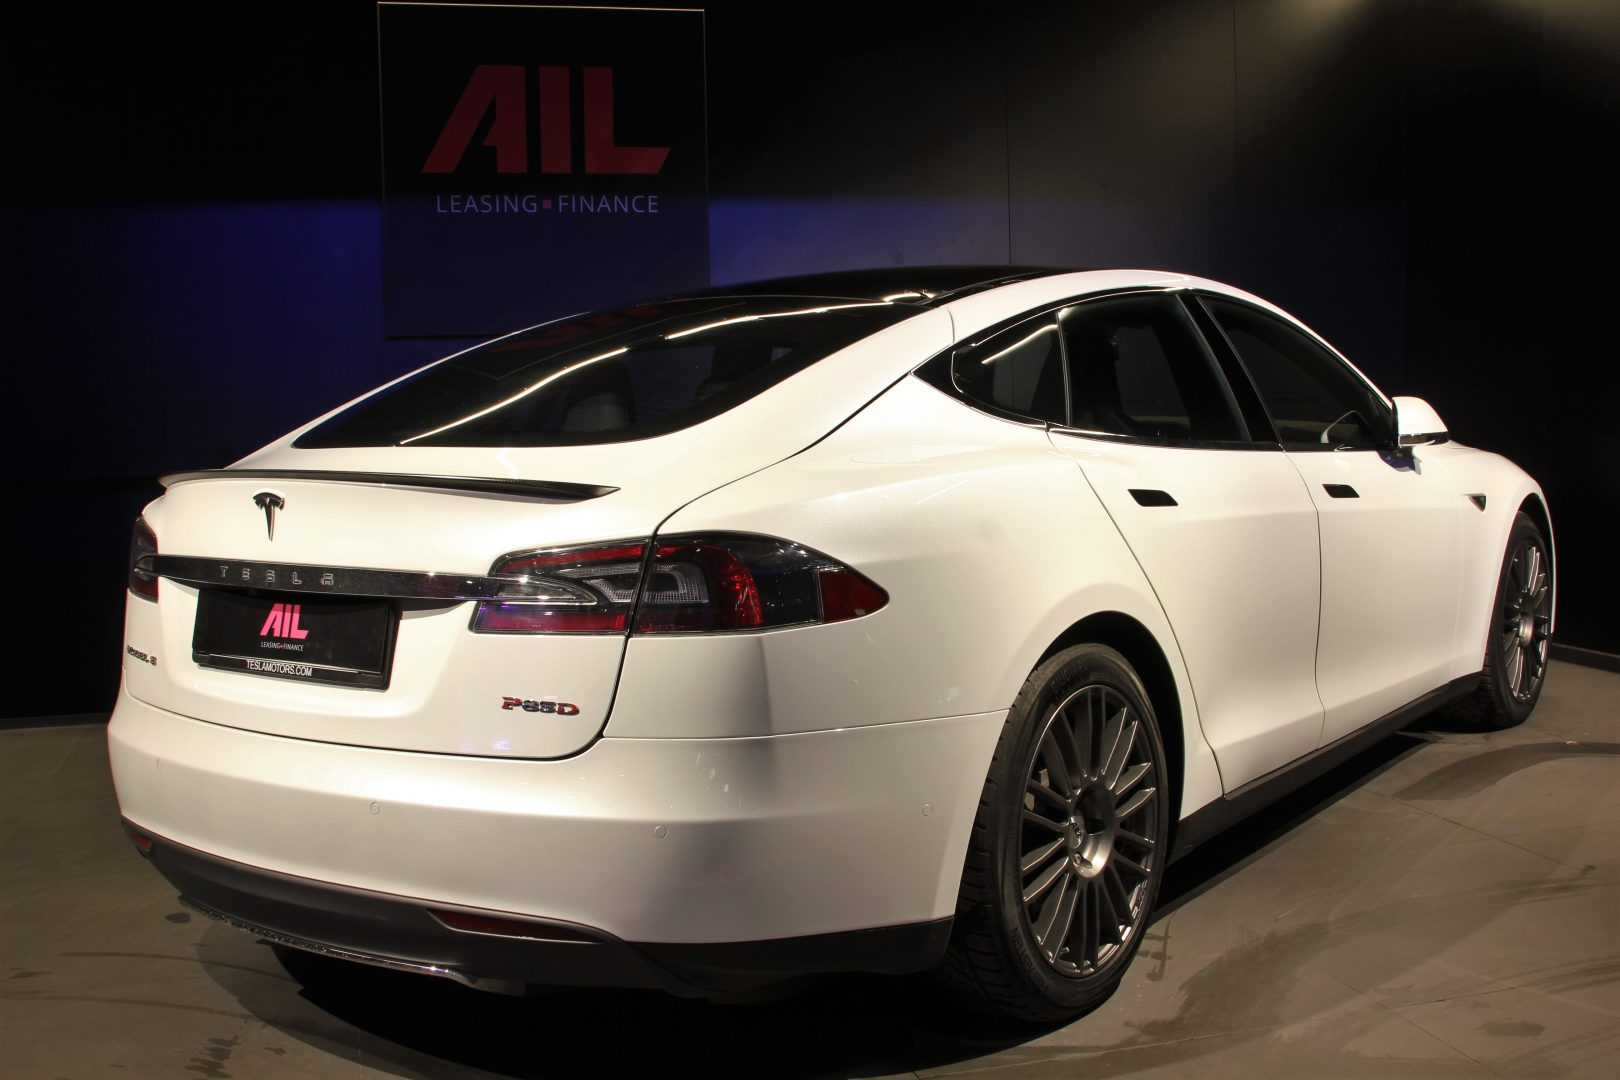 AIL TESLA Model S P85D Performance  2